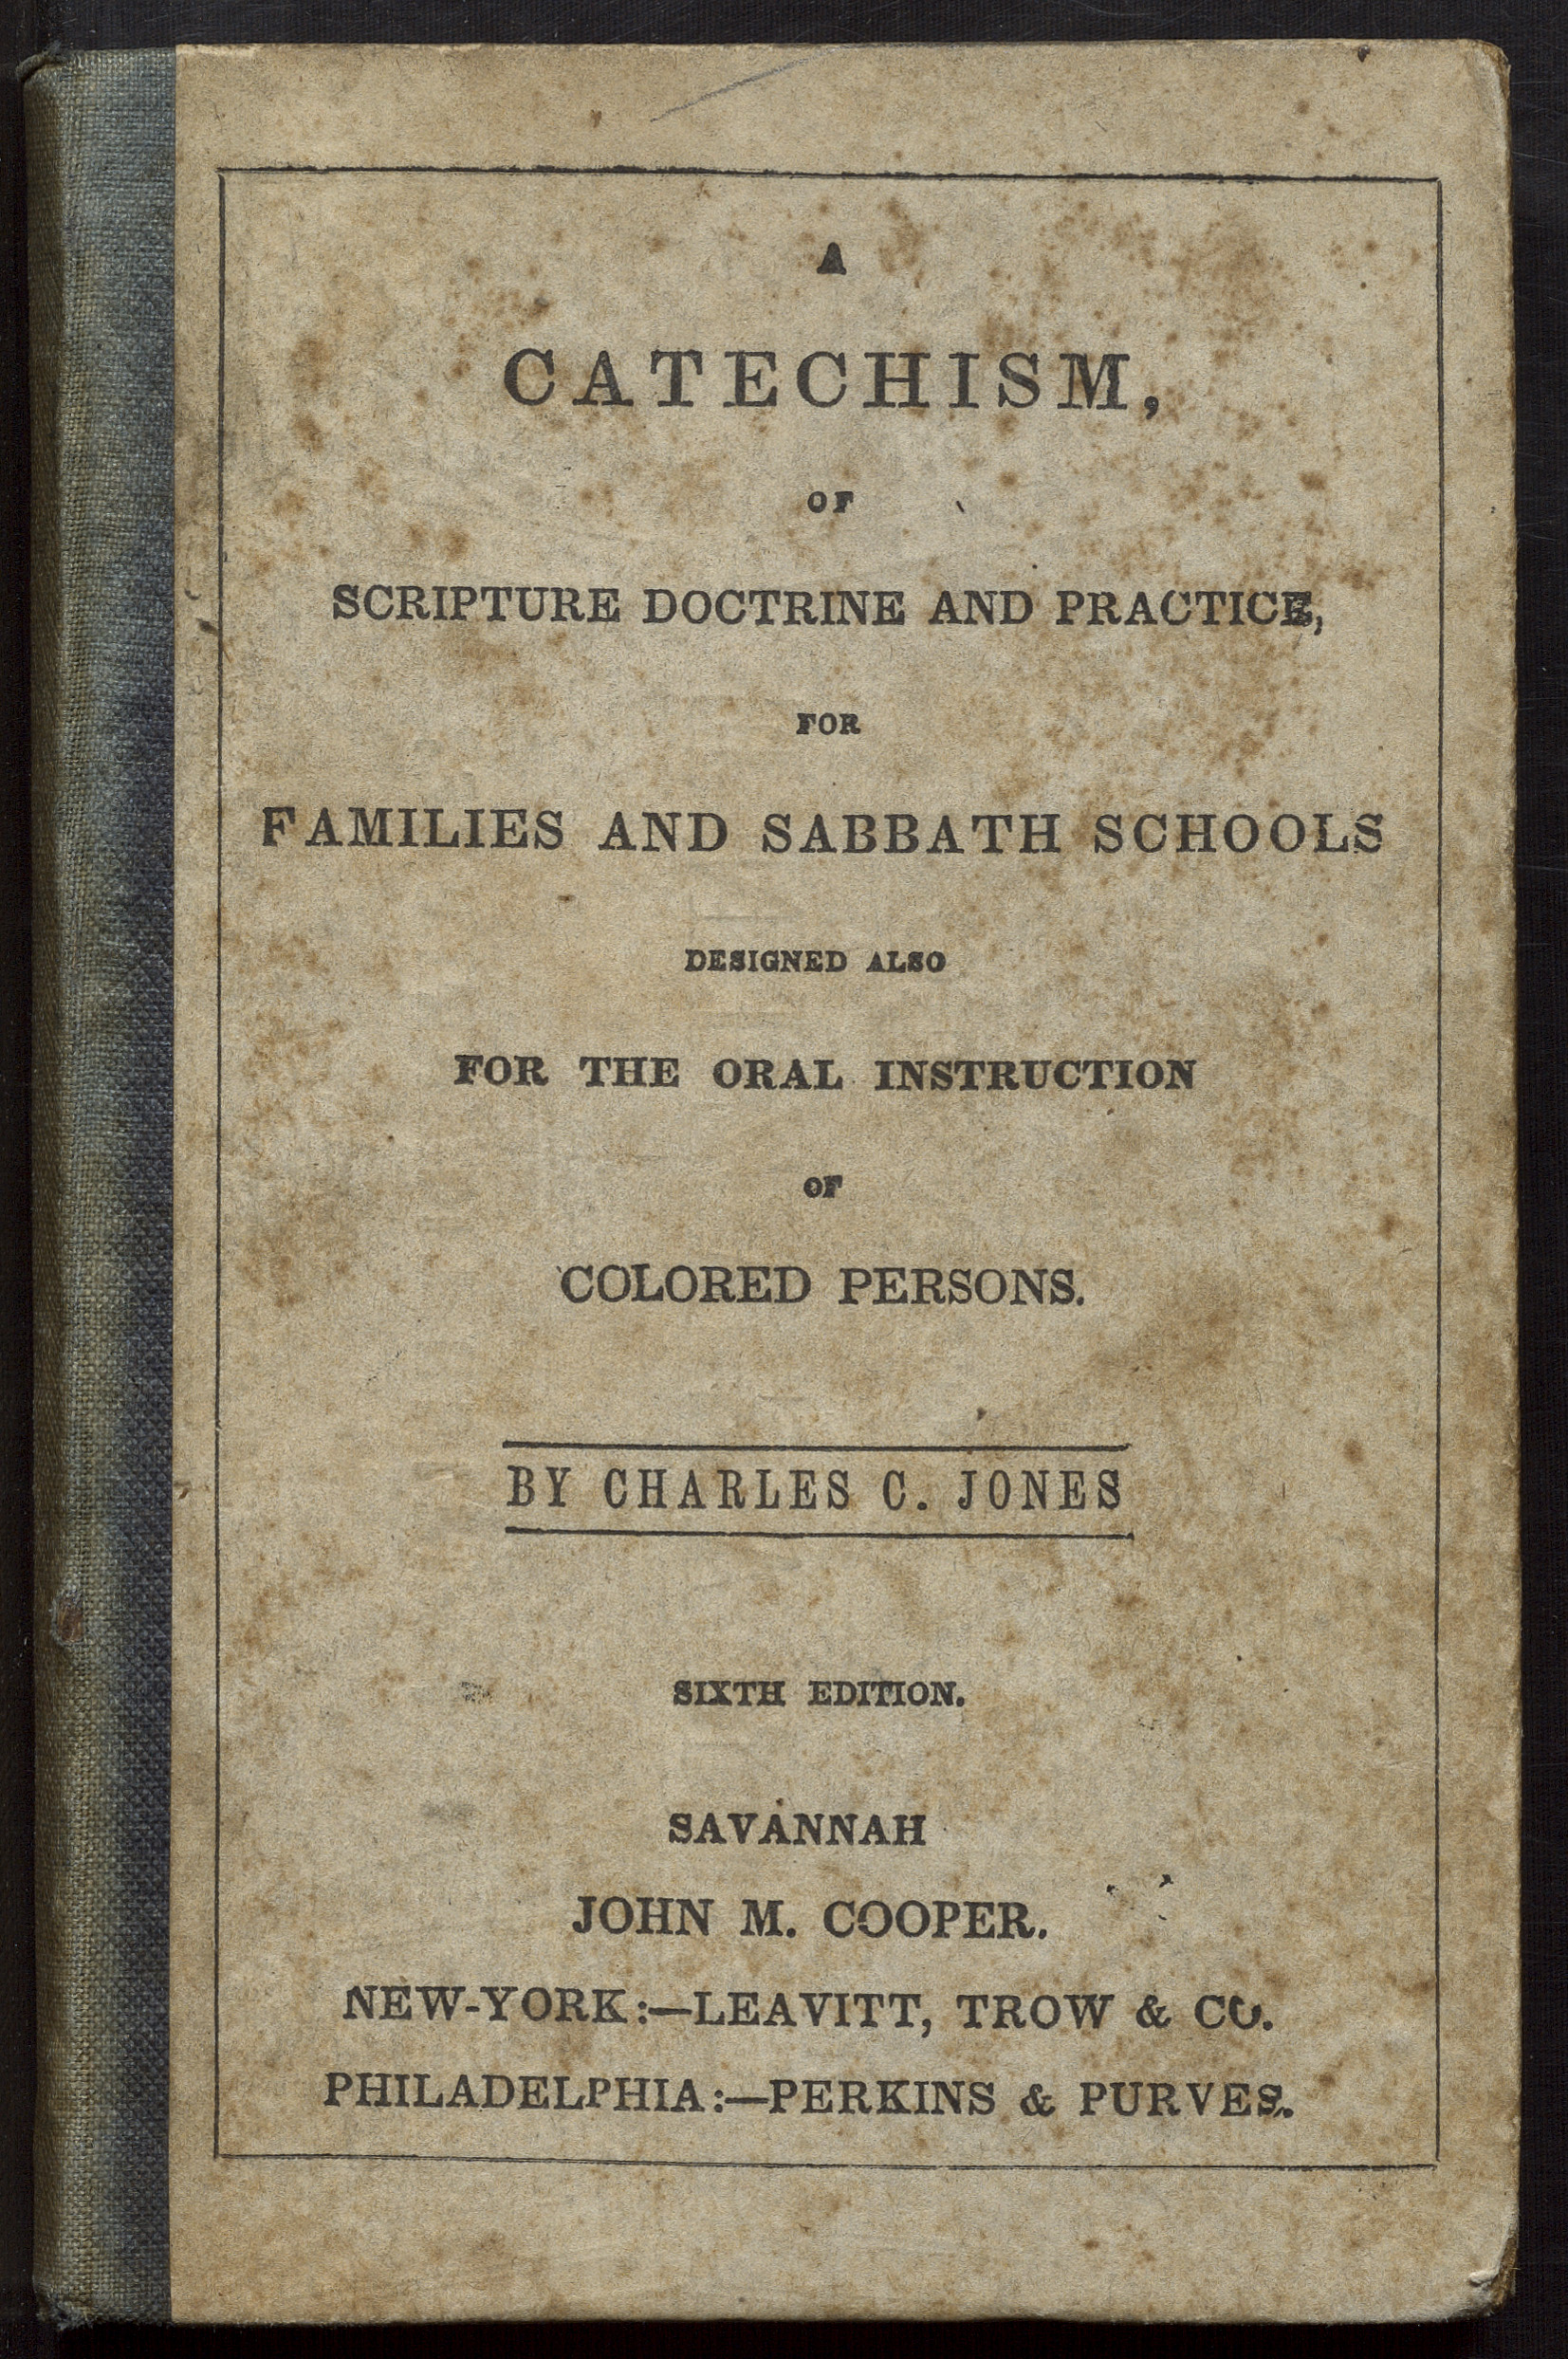 A Catechism, of Scripture Doctrine and Practice, for Families and Sabbath Schools: Designed Also for the Oral Instruction of Colored Persons, c.1844. Content compilation © 2020, by the American Antiquarian Society. All rights reserved.